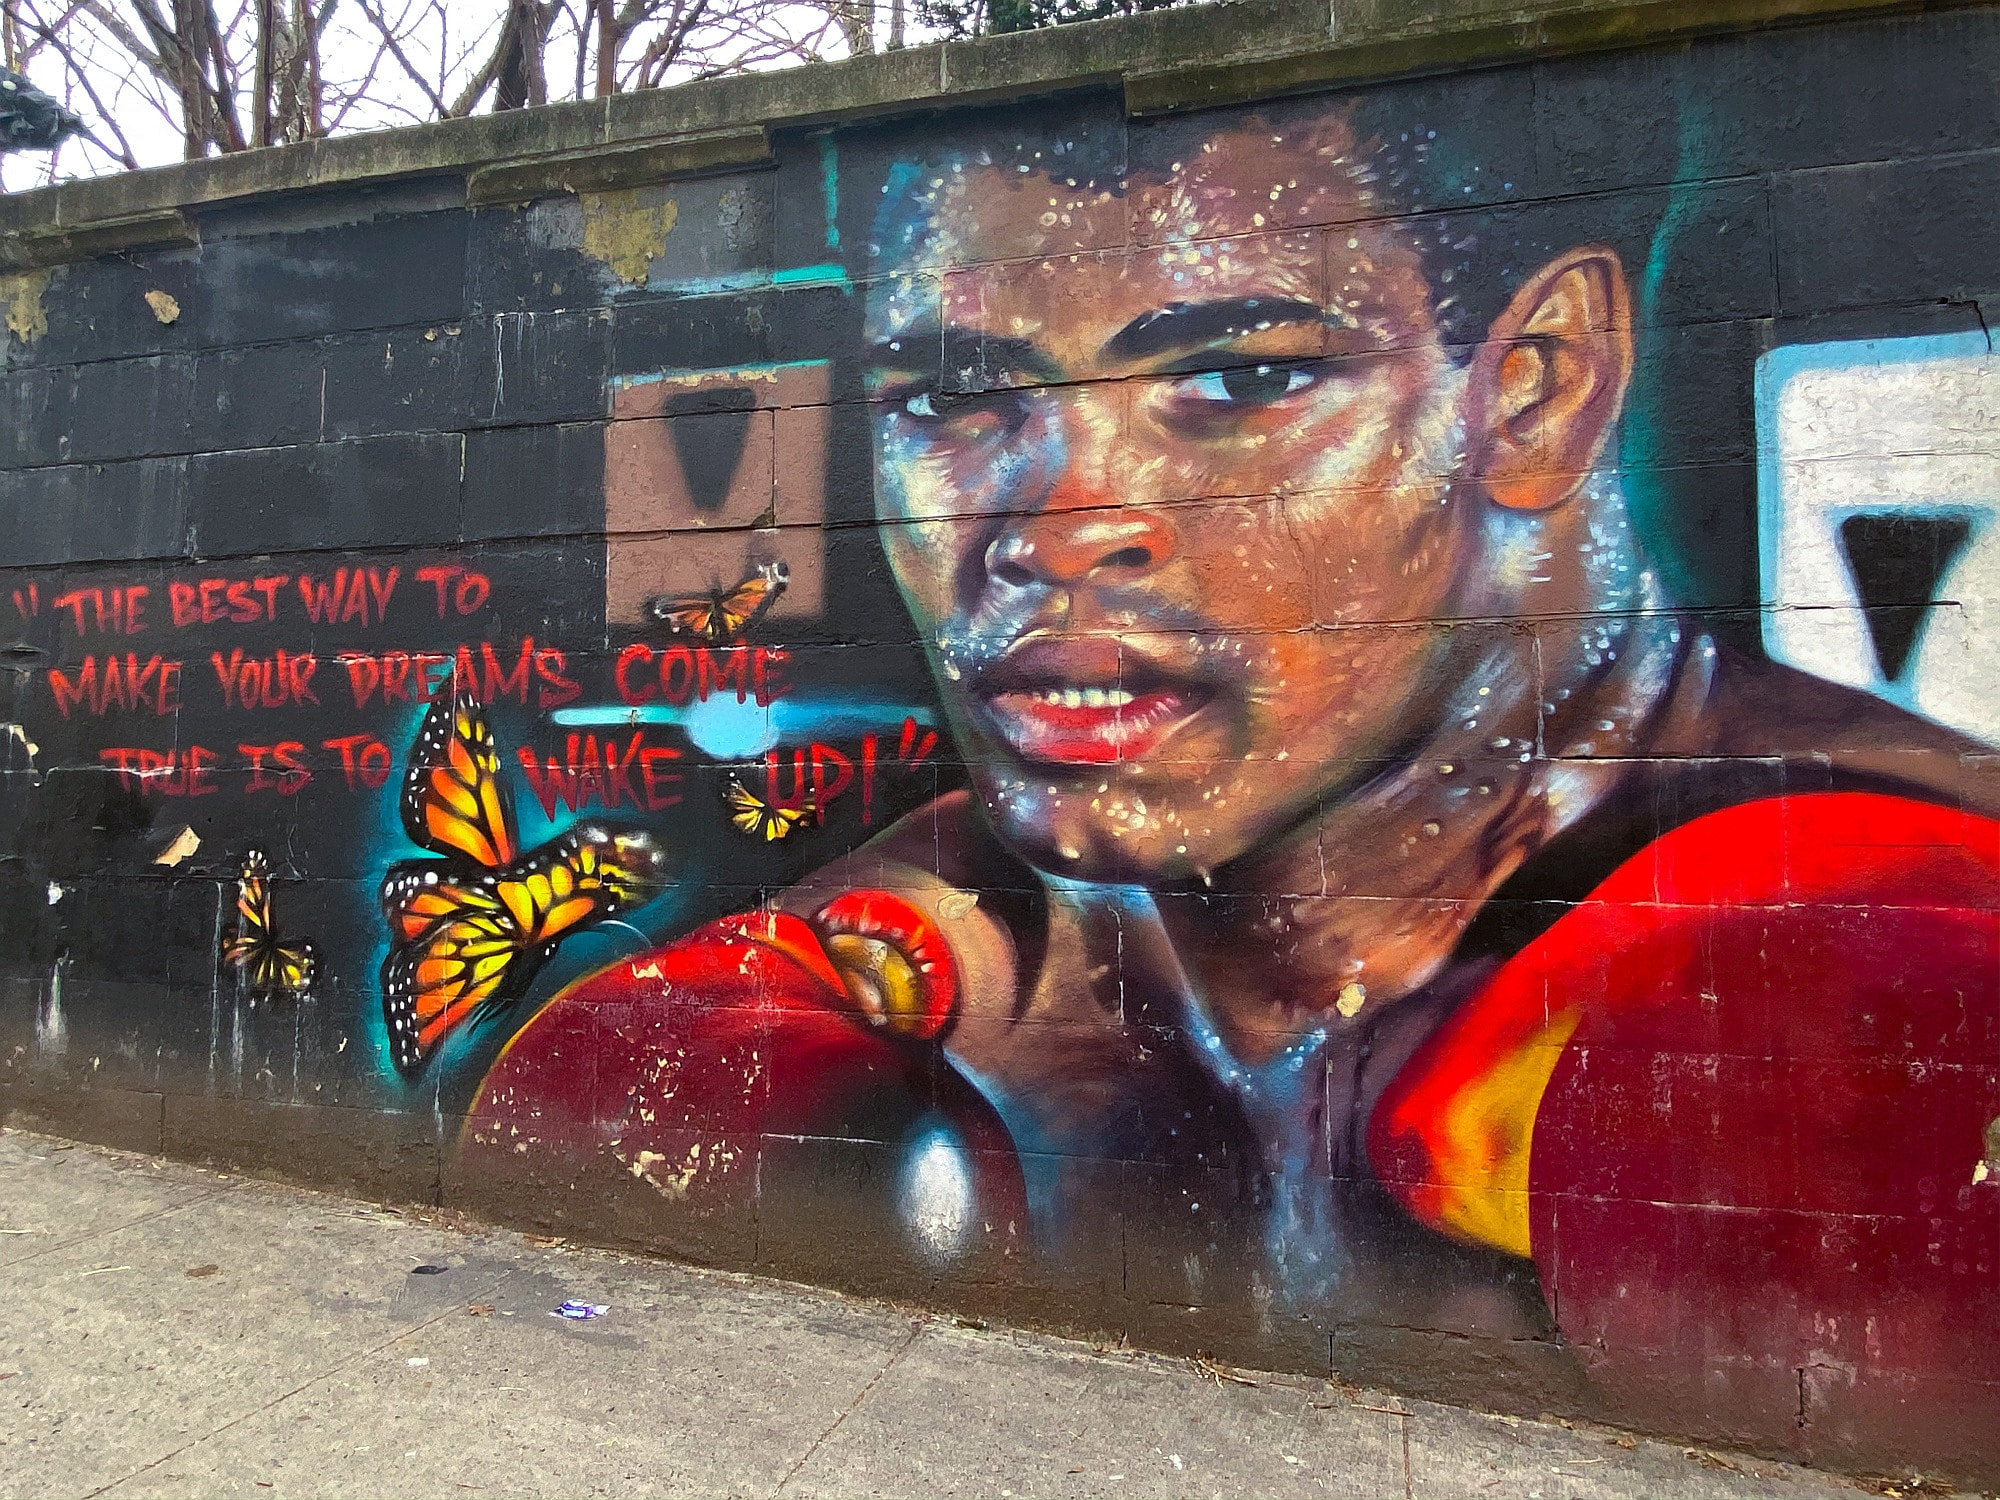 Muhammad Ali mural near Concourse, Bronx. Photo taken on January 30, 2020 by Jules Antonio. (CC BY-SA 2.0).